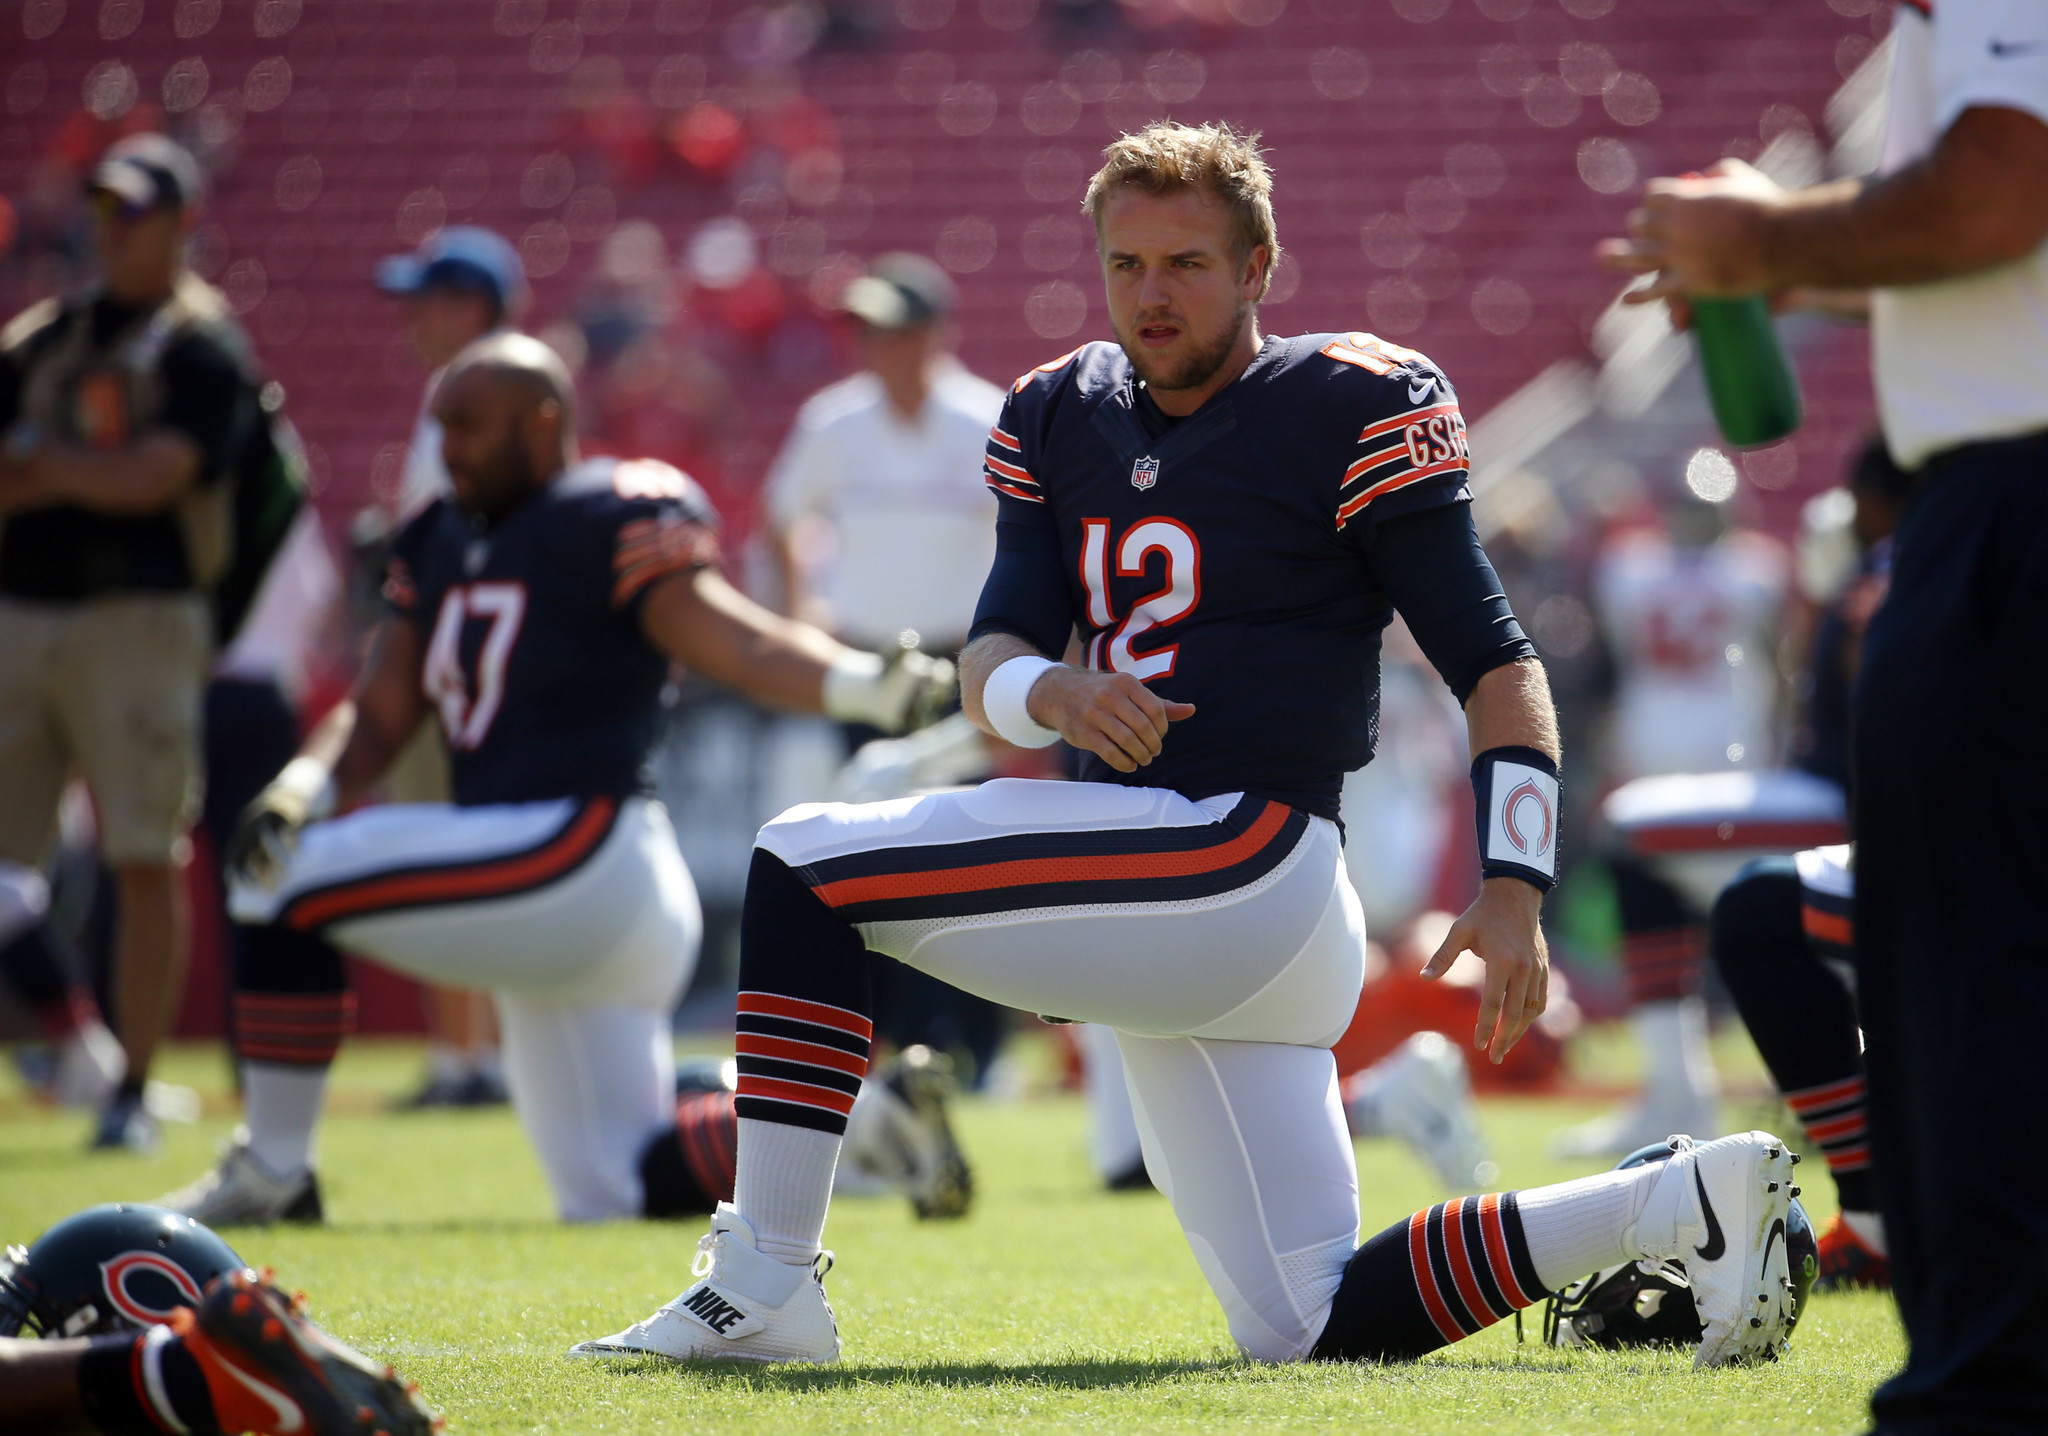 Matt Barkley takes over for Bears but Jay Cutler could be